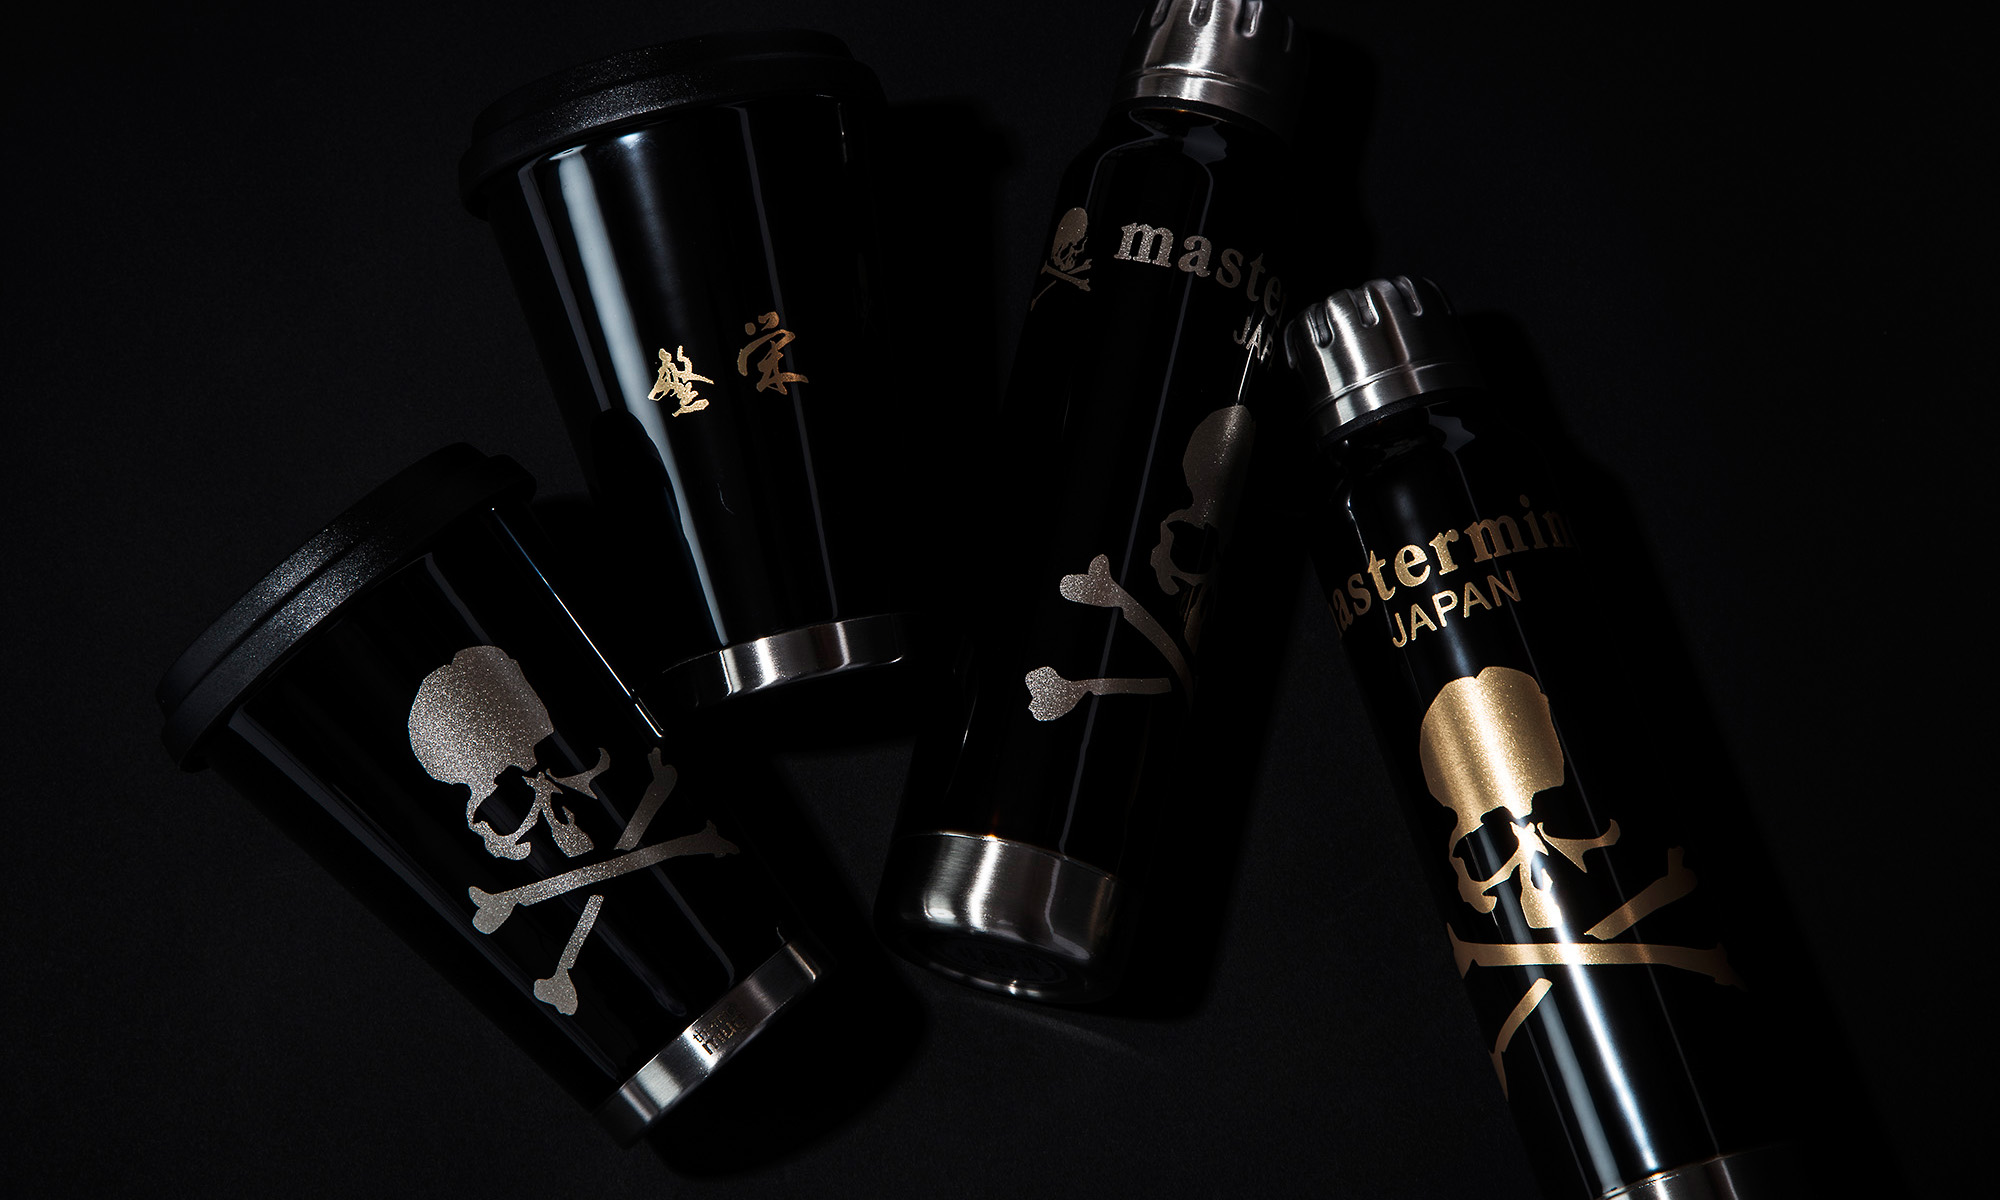 常に憧れのスカルを持ち歩け! mastermind JAPAN × thermo mug -Tumbler & Umbrella Bottle-